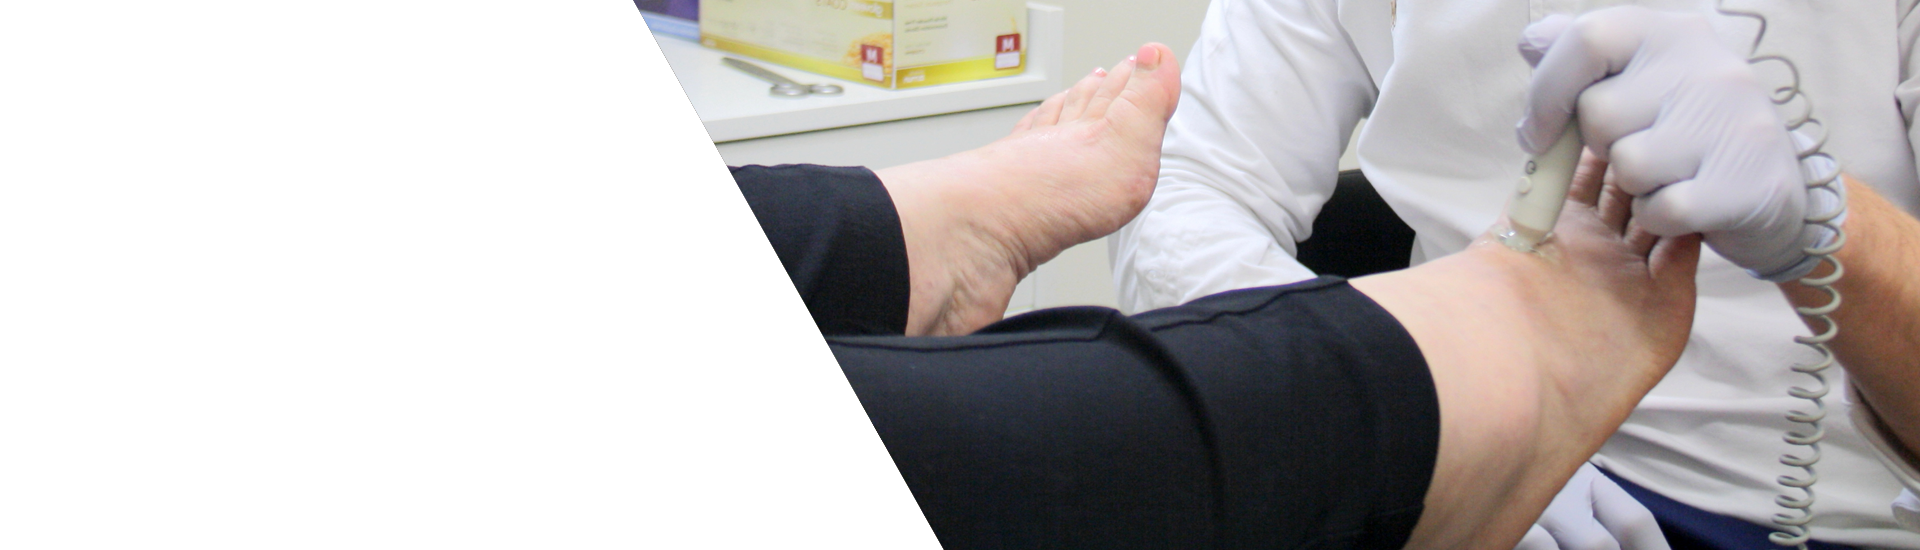 banner-services-podiatry-2